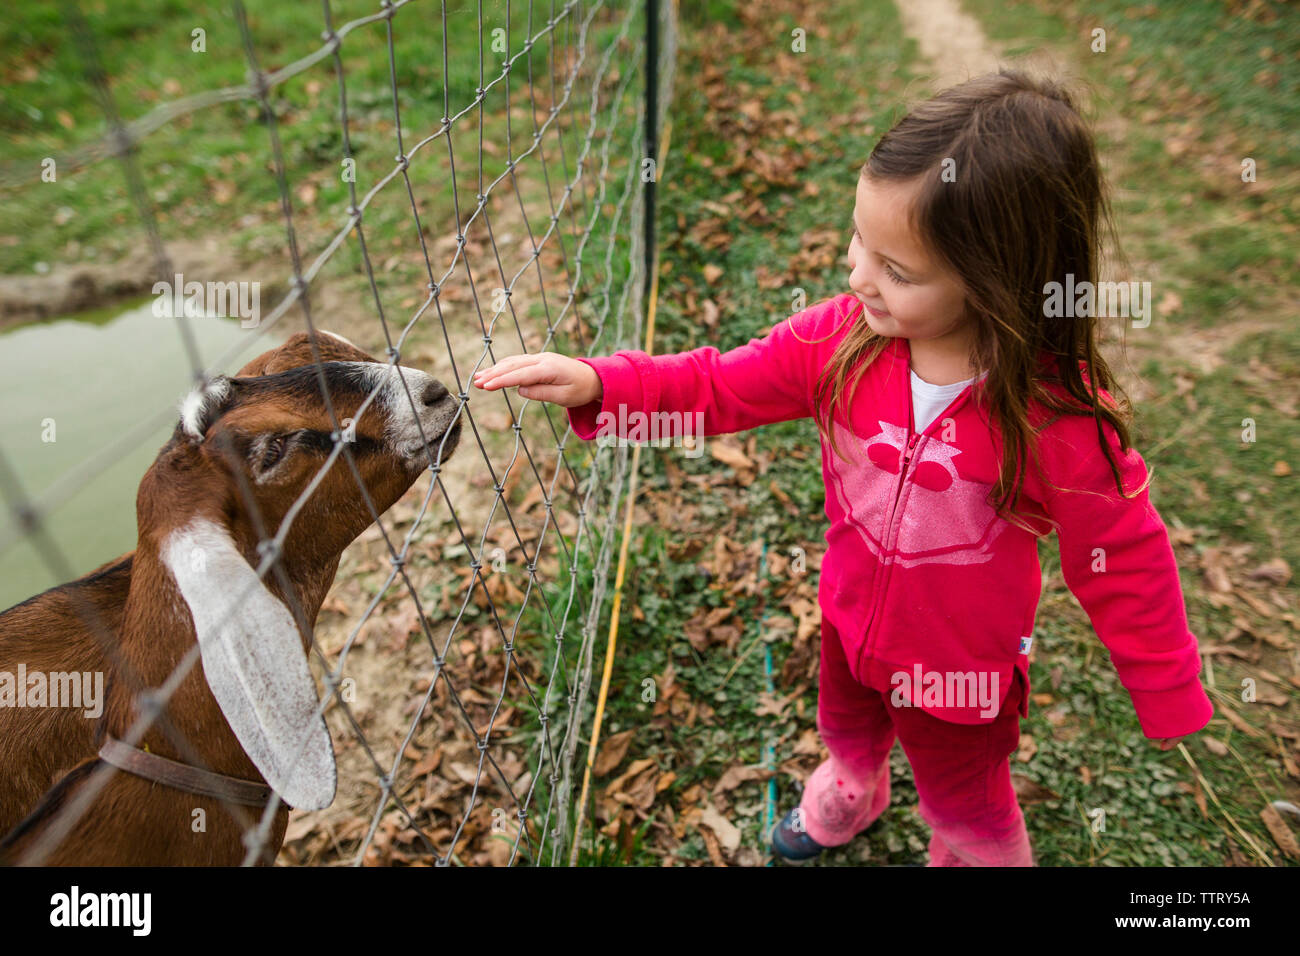 High angle view of girl touching kid goat through fence at farm - Stock Image